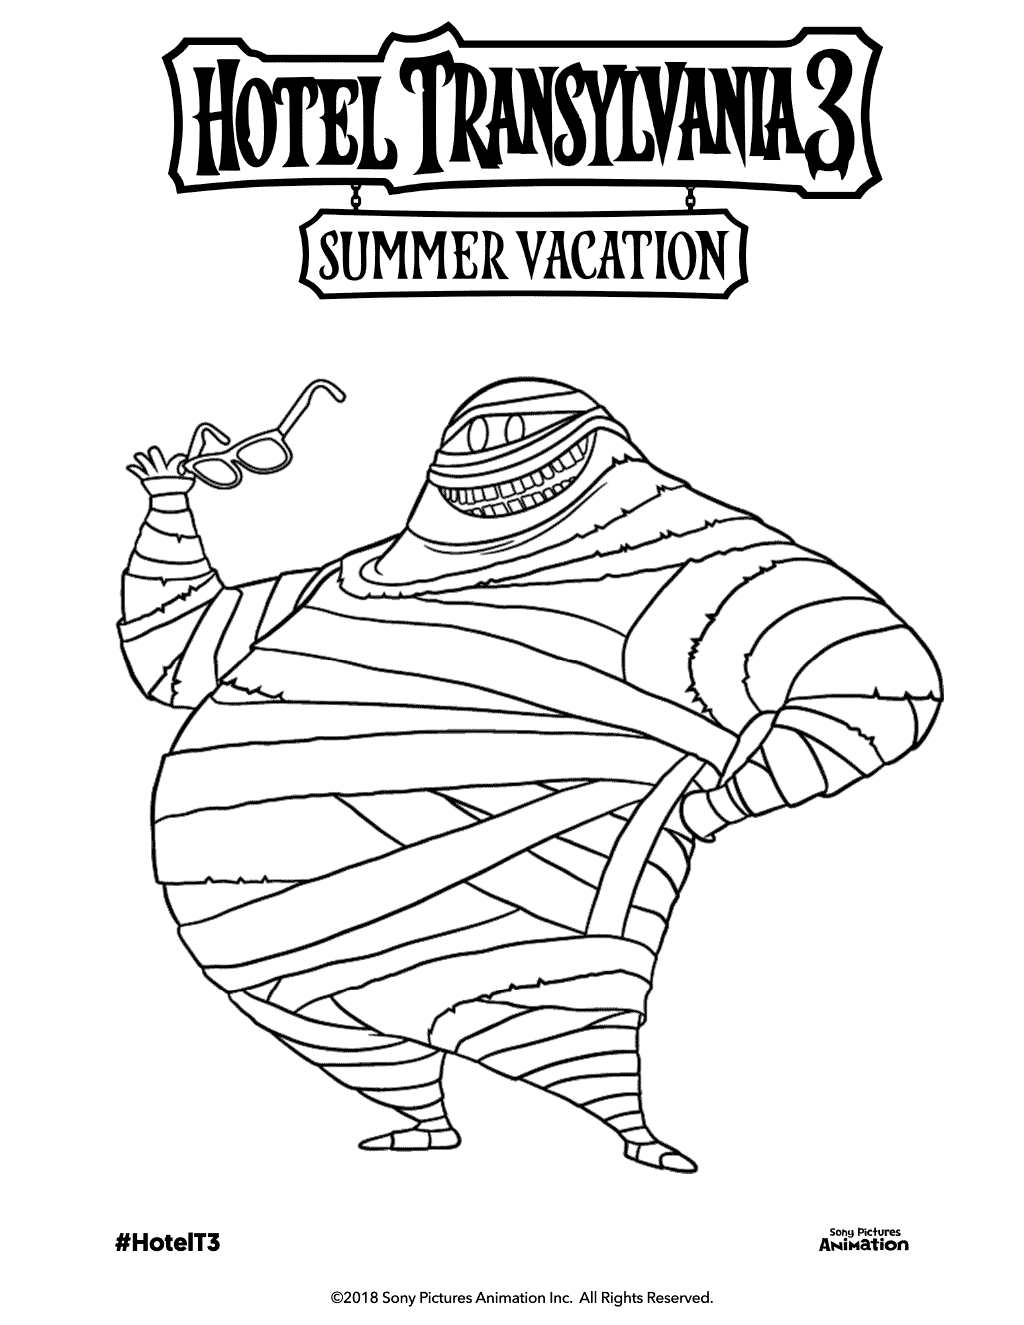 Mummy Murray Hotel Transylvania 3 Coloring Pages